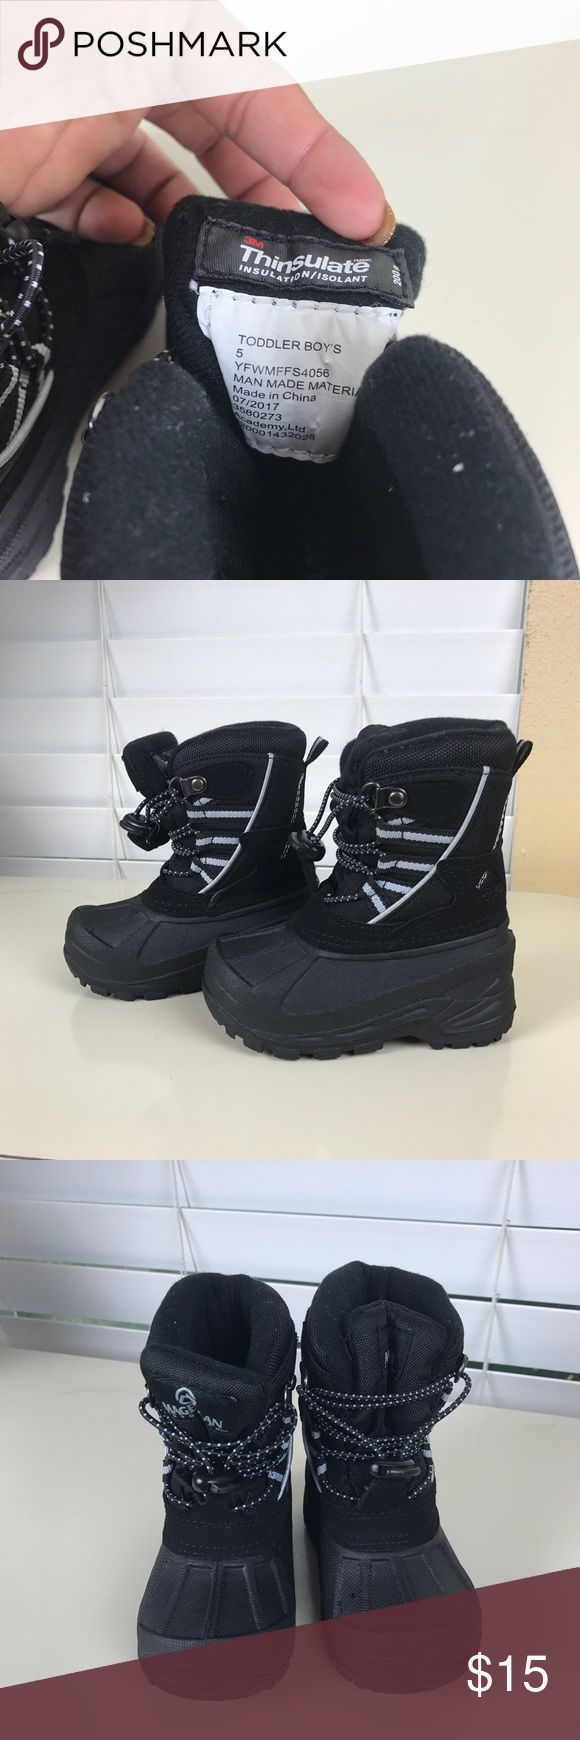 Boys snow boots Boys snow boots size 5 Great condition  Only worn twice Shoes Rain & Snow Boots